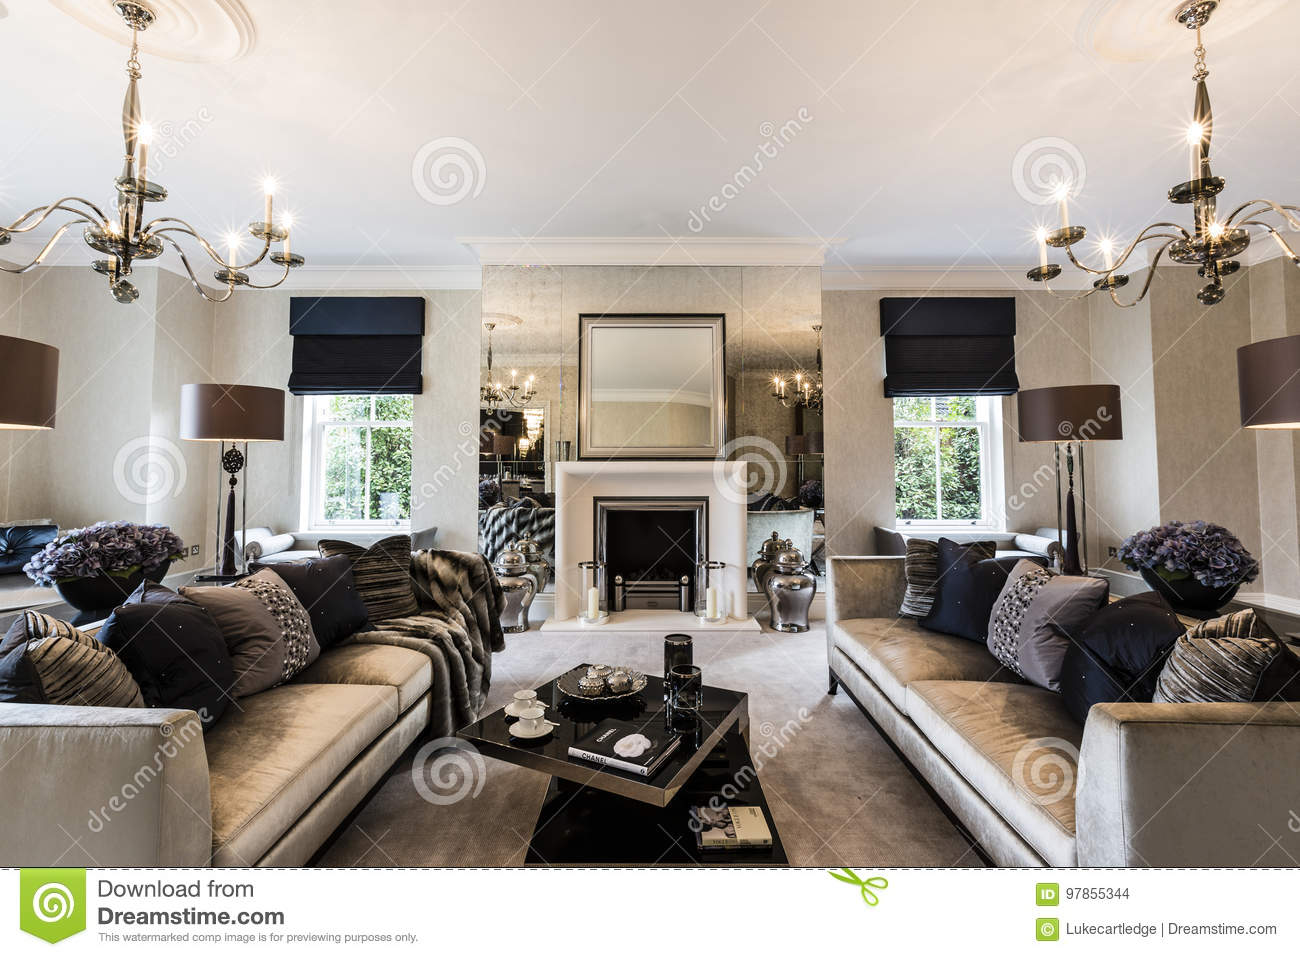 Download A Luxury Mansion Living Room With Feature Fireplace Stock Photo    Image Of Luxury,